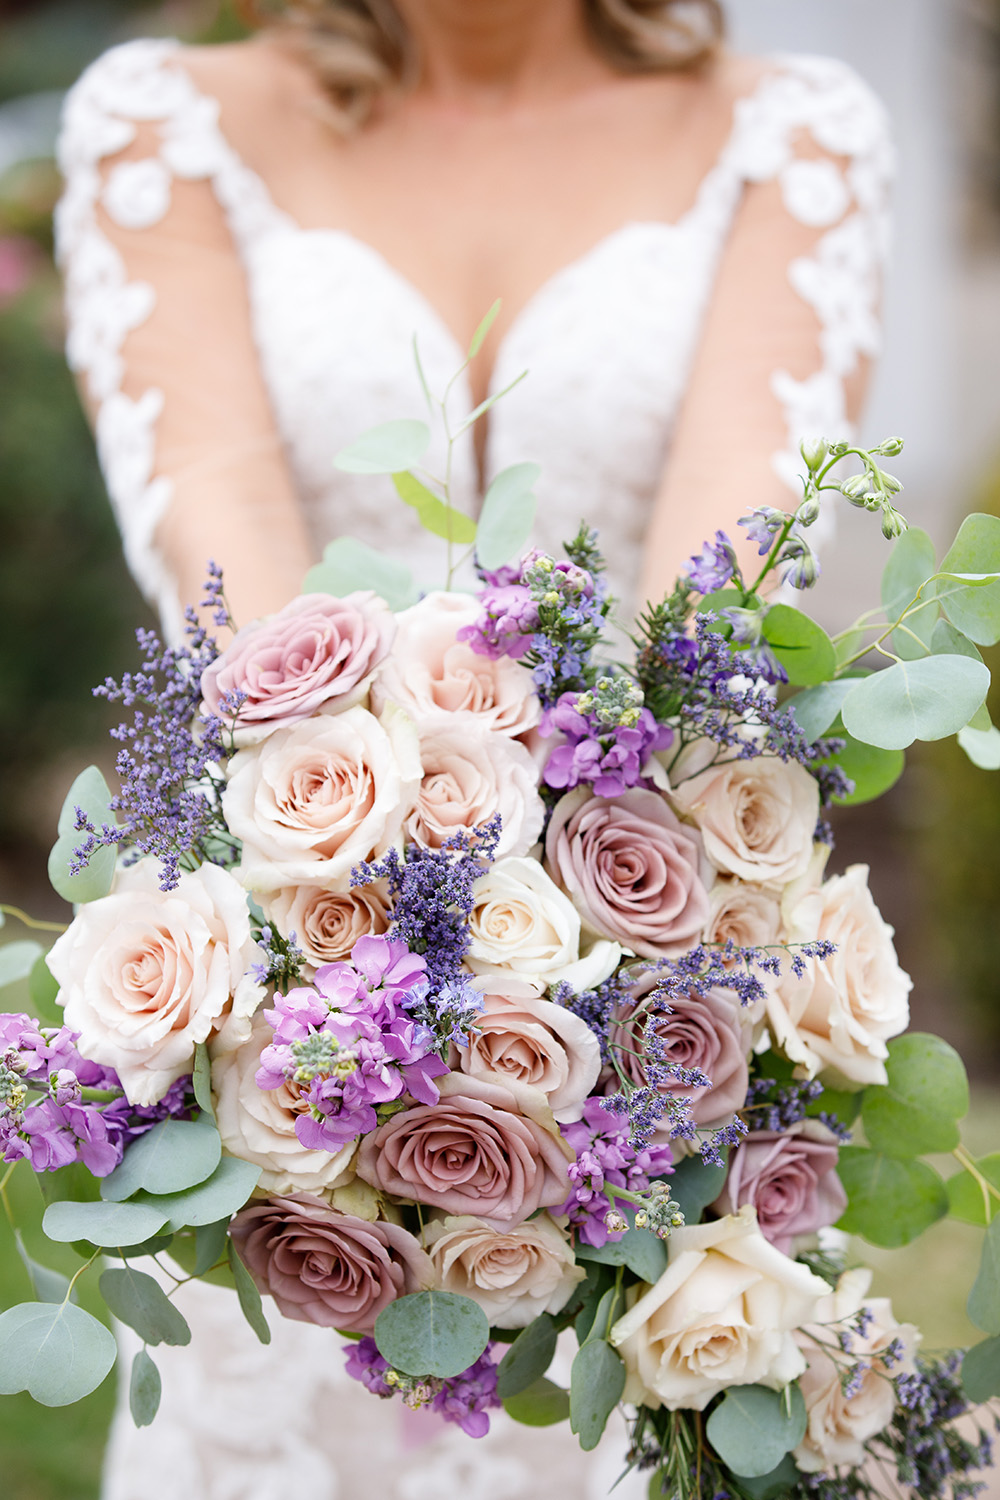 Romantic flower bouquet including rose gold roses, lavender, eucalyptus and violet hydrangeas by Malleret Designs.